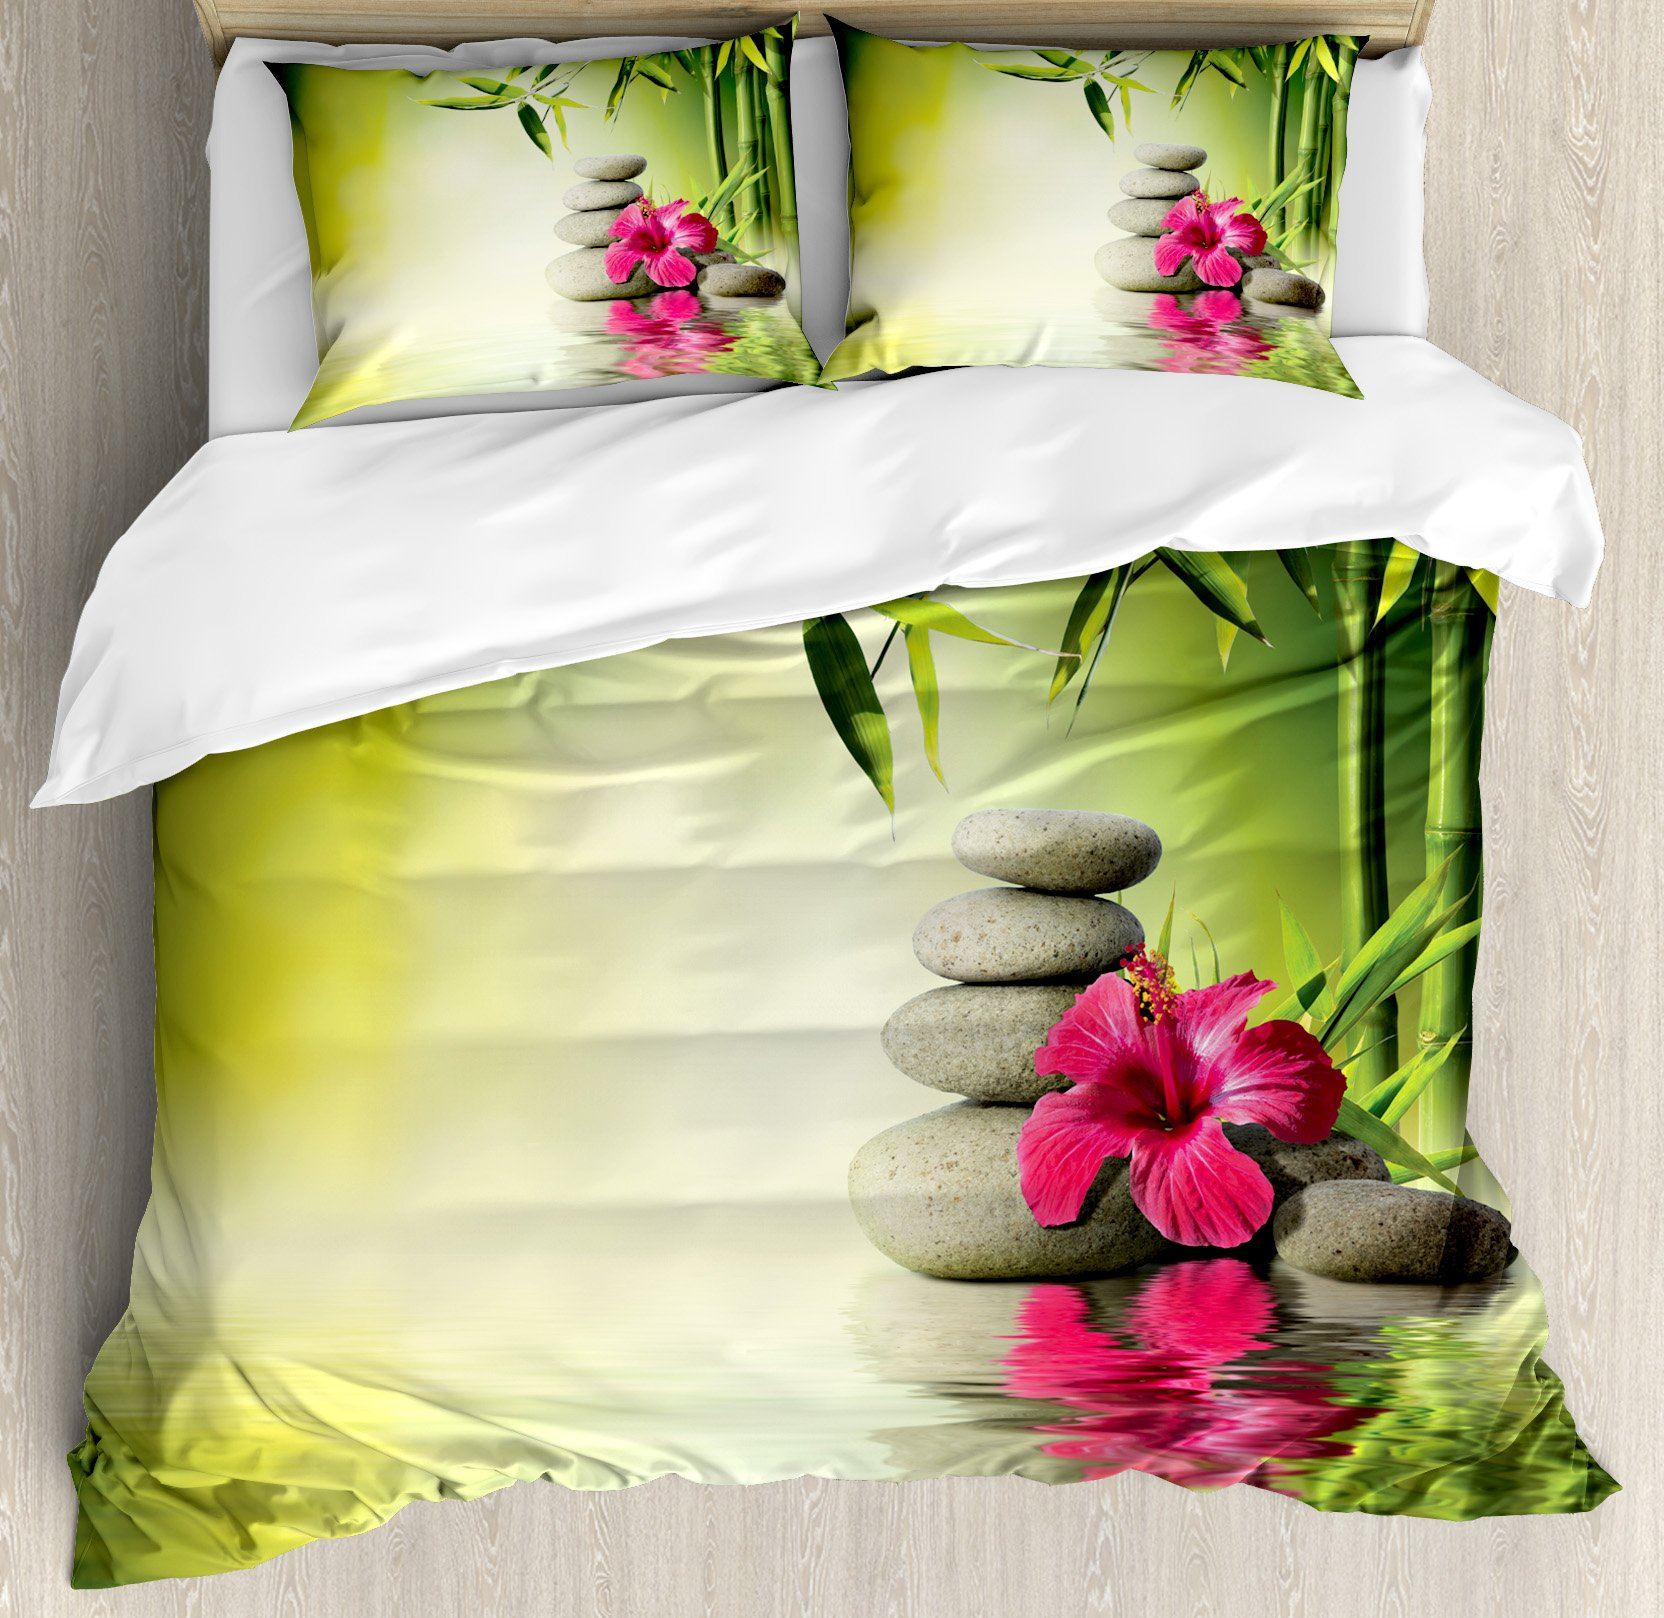 Ambesonne Spa Decor Duvet Cover Set Queen Size, Stones Bamboo Leaves on the Water Pool Meditating Freshness Relaxing, Decorative 3 Piece Bedding Set with 2 Pillow Shams